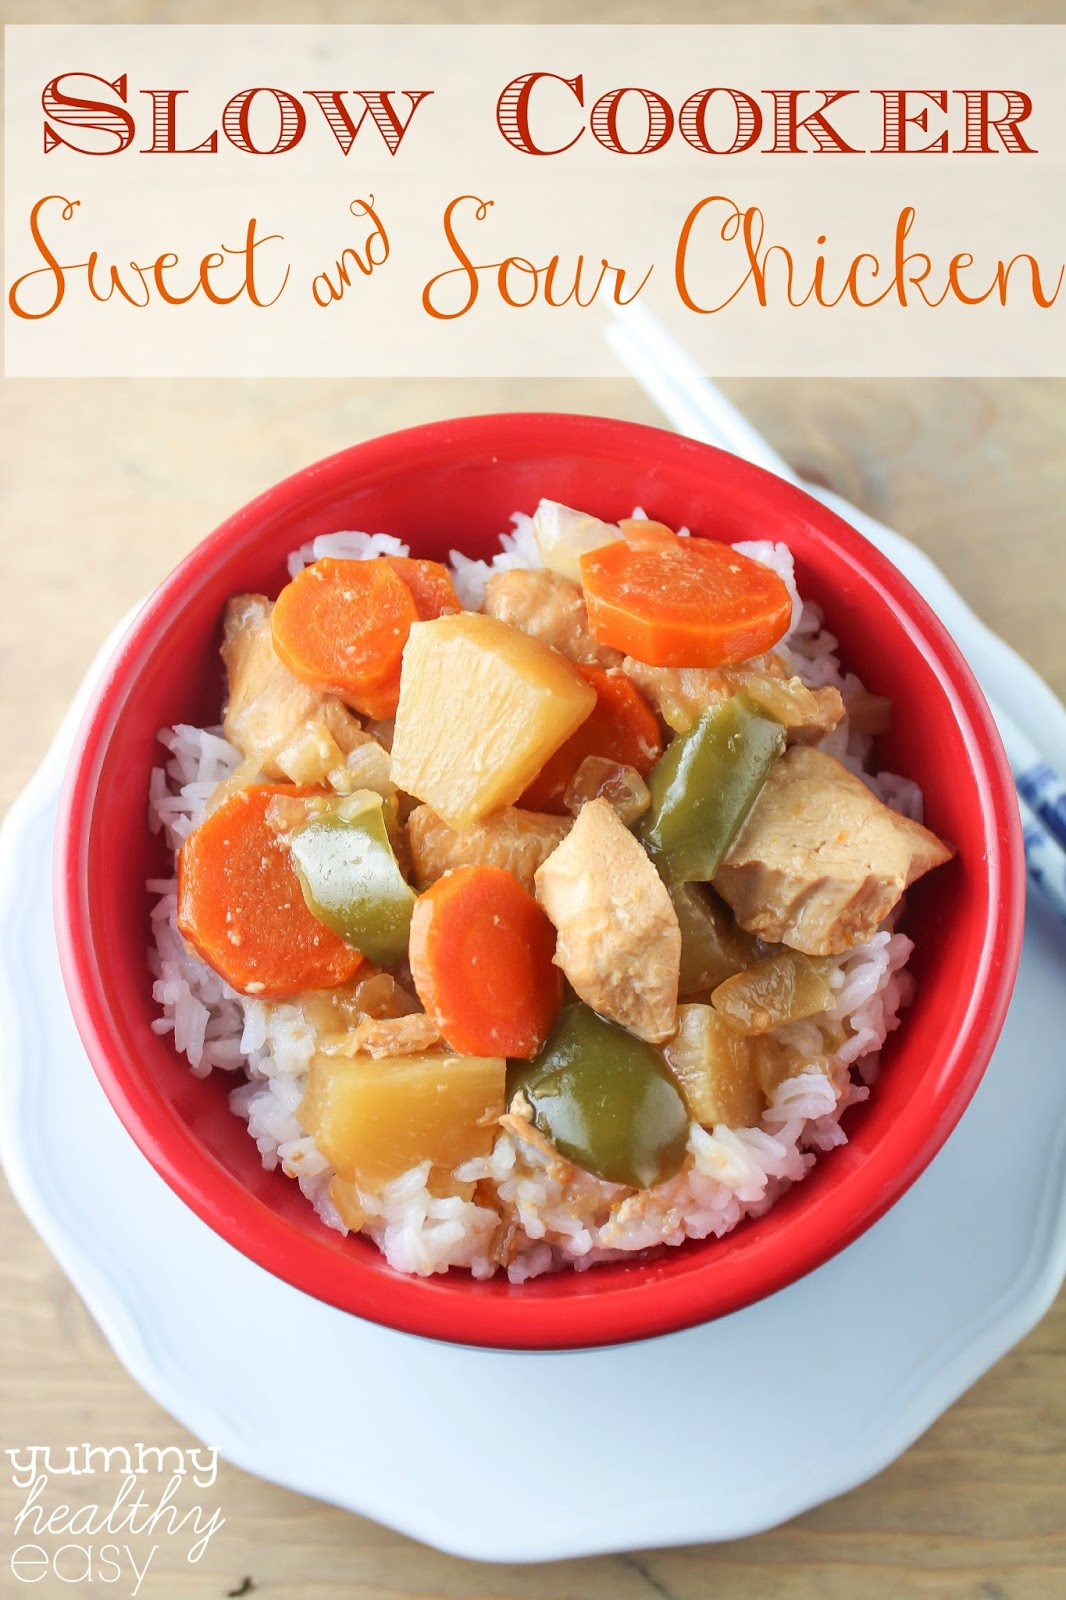 ... Slow Cooker Sweet & Sour Chicken is simple, delicious and perfect for